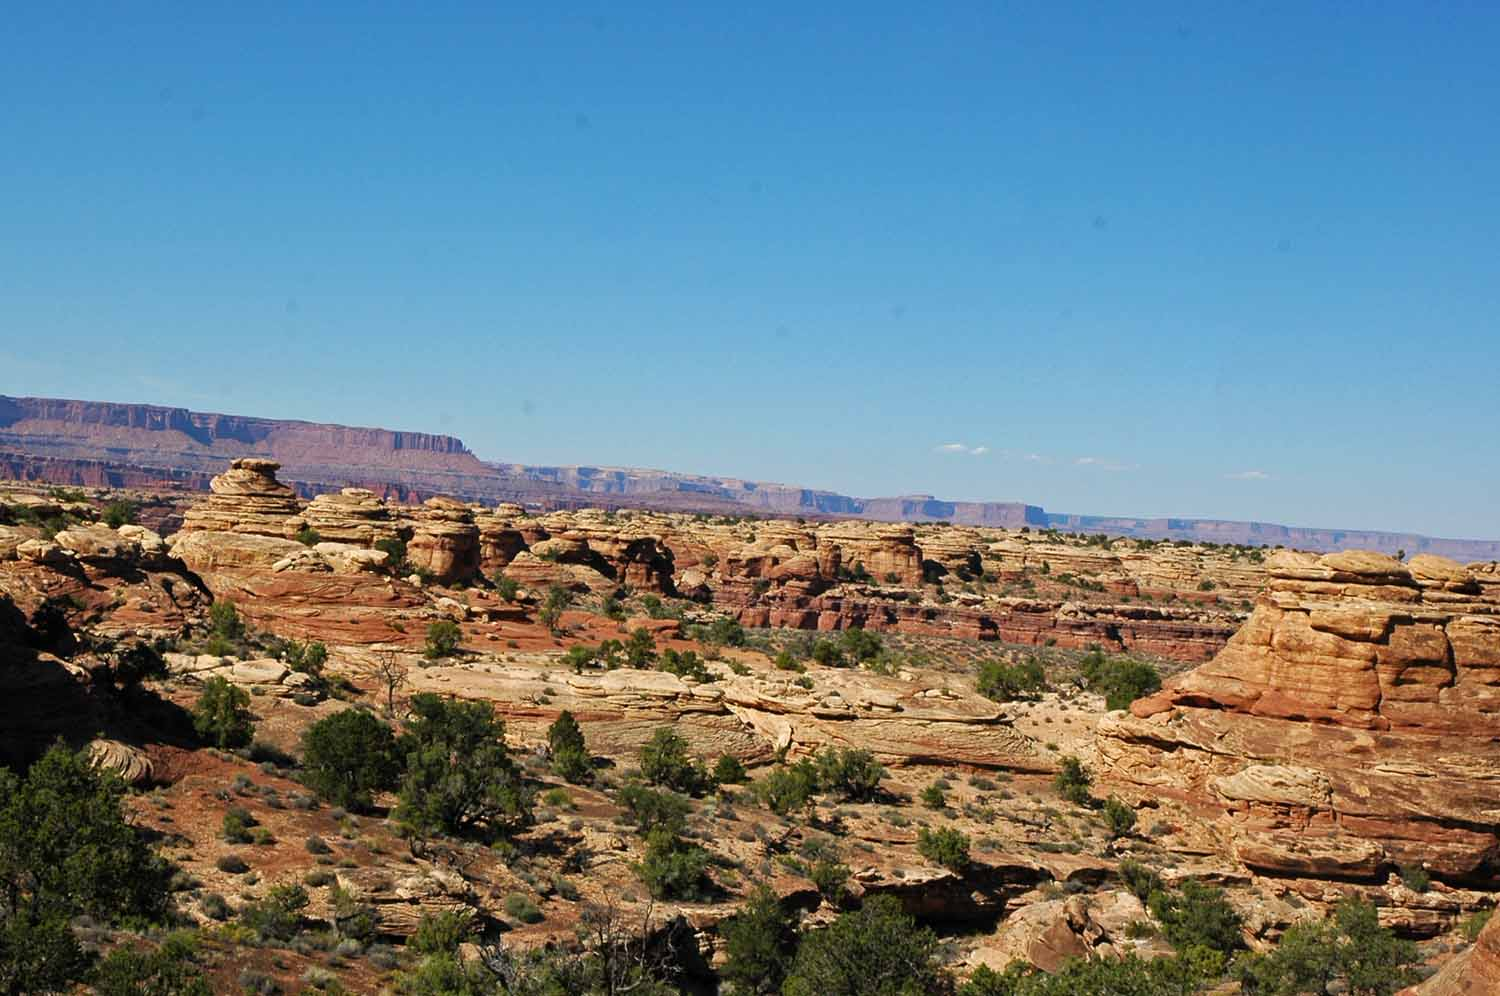 Chesler Park - Canyonlands Needles District